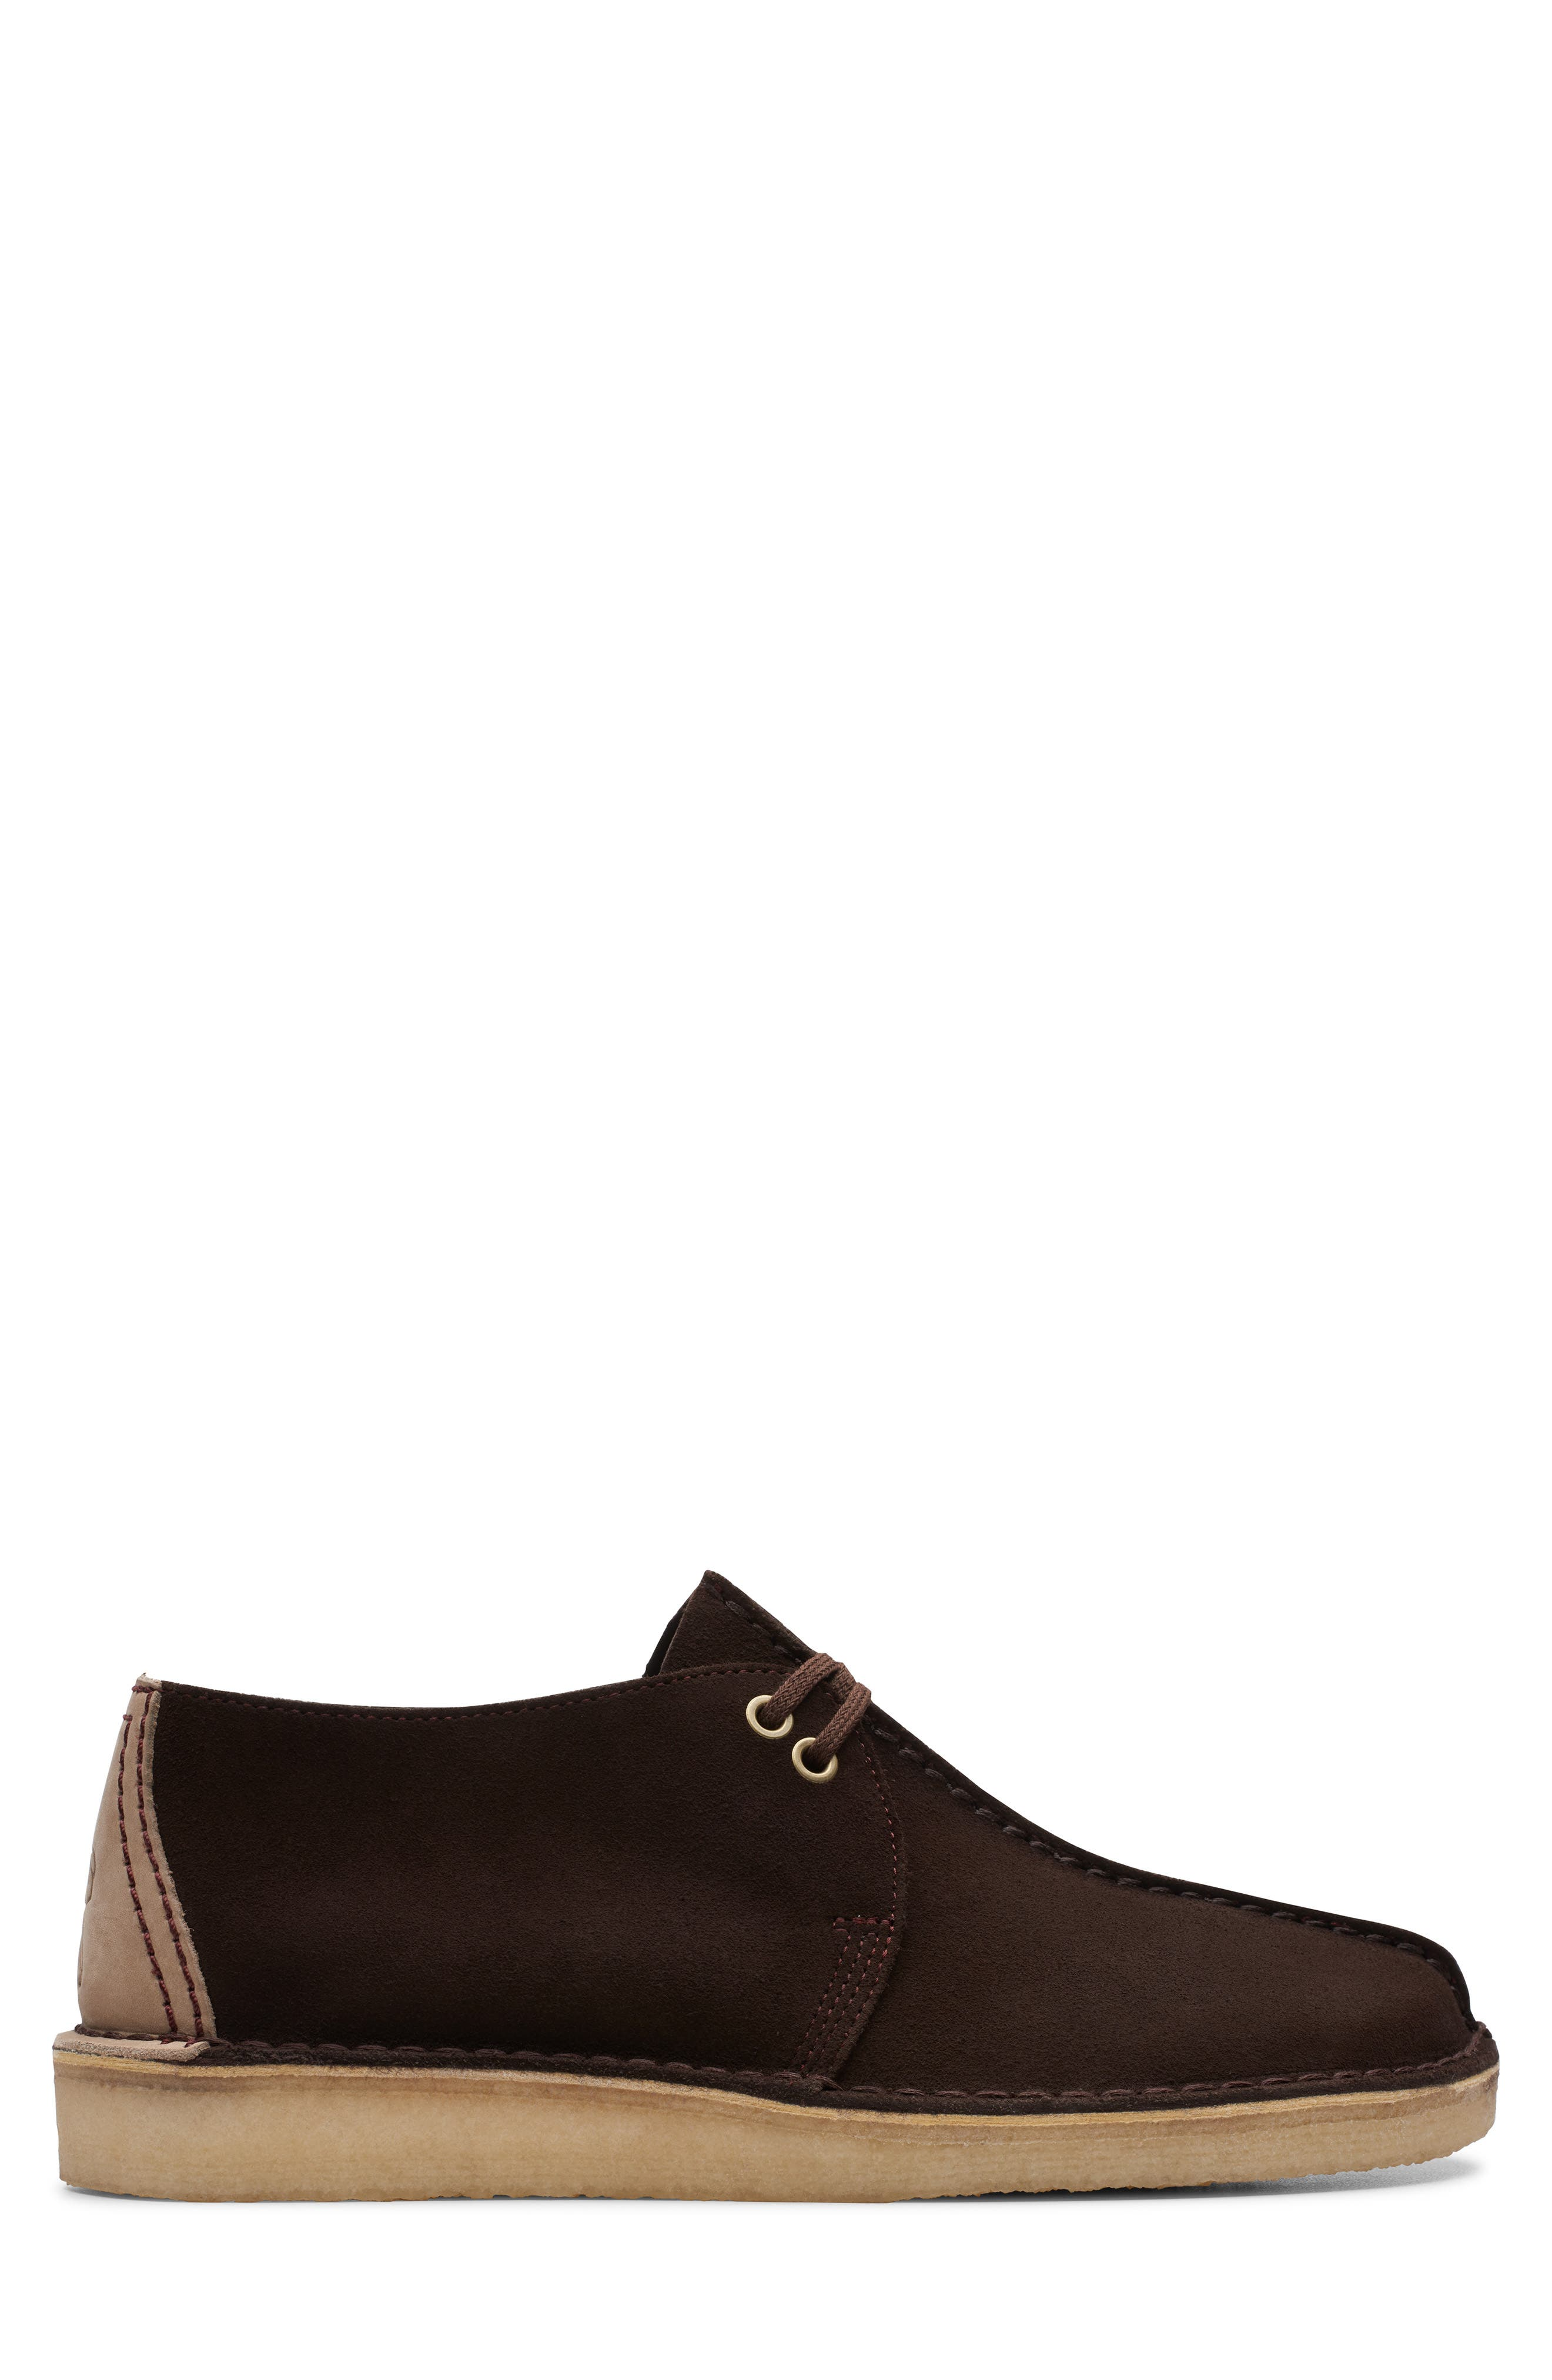 CLARKS<SUP>®</SUP>, Desert Trek Chukka Boot, Alternate thumbnail 2, color, DARK BROWN SUEDE